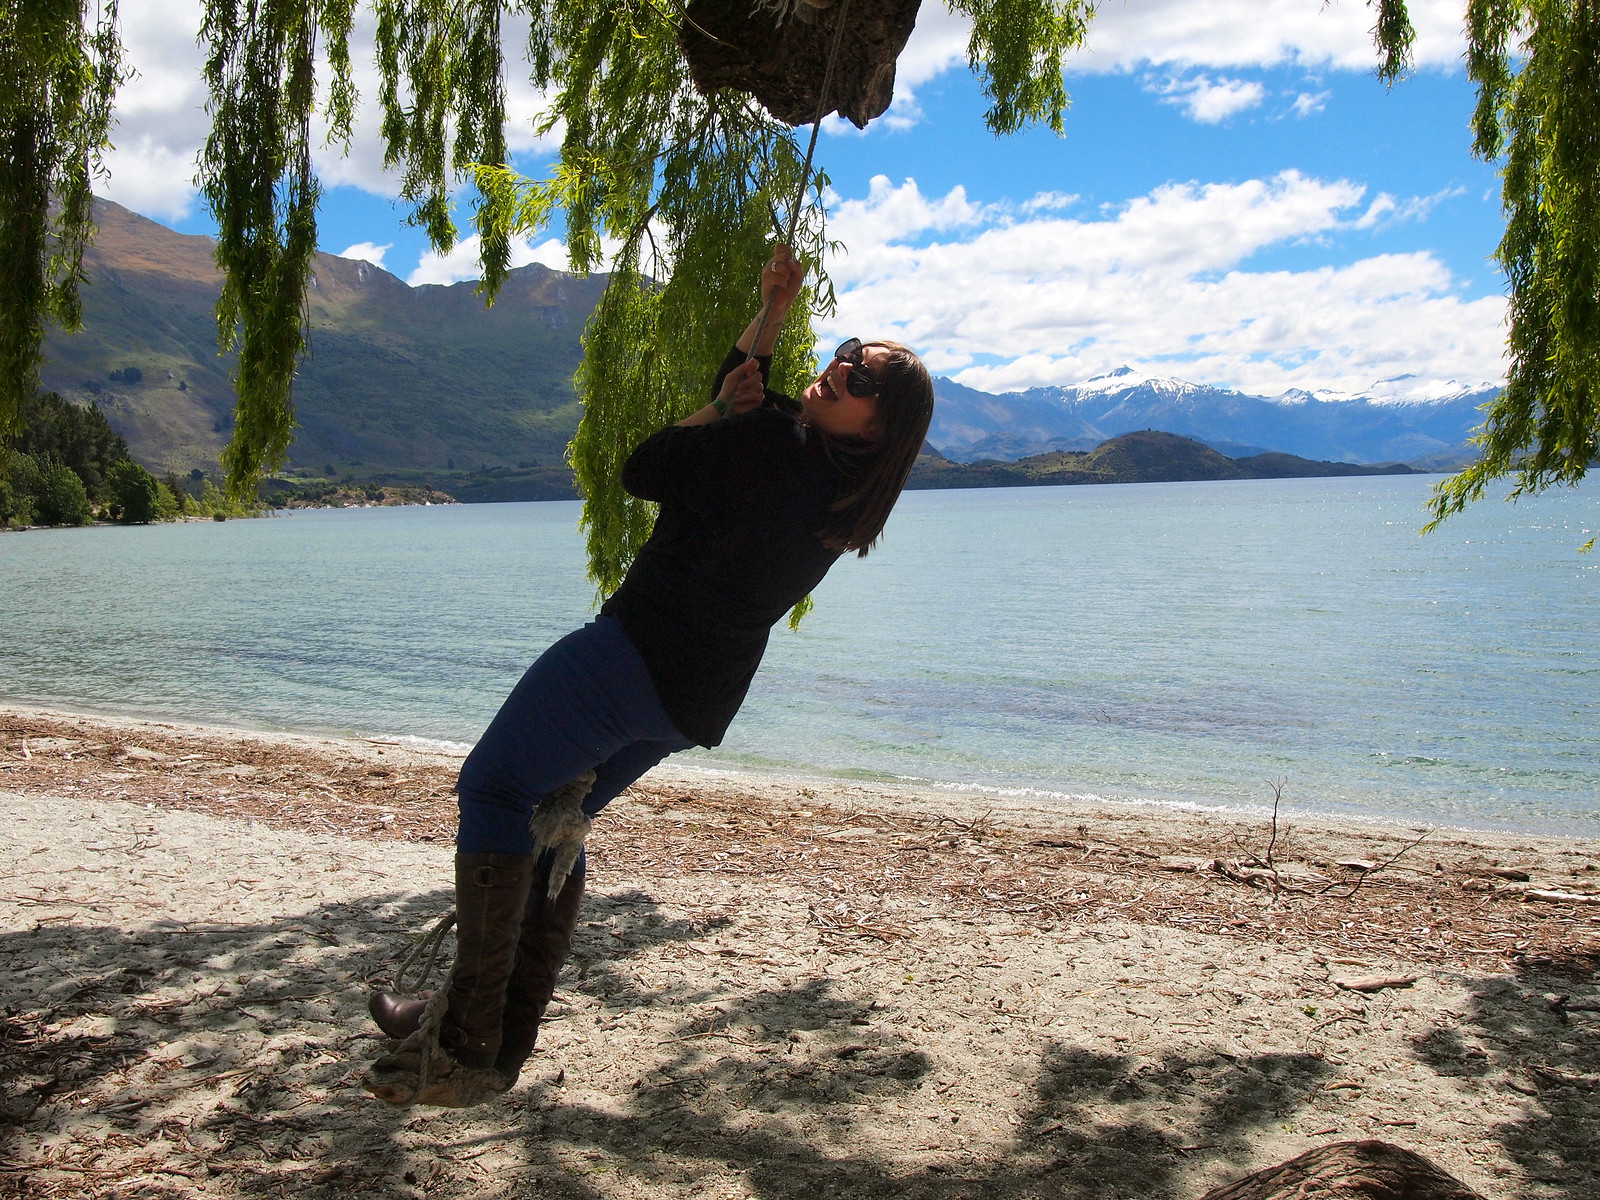 Having fun in Wanaka, NZ